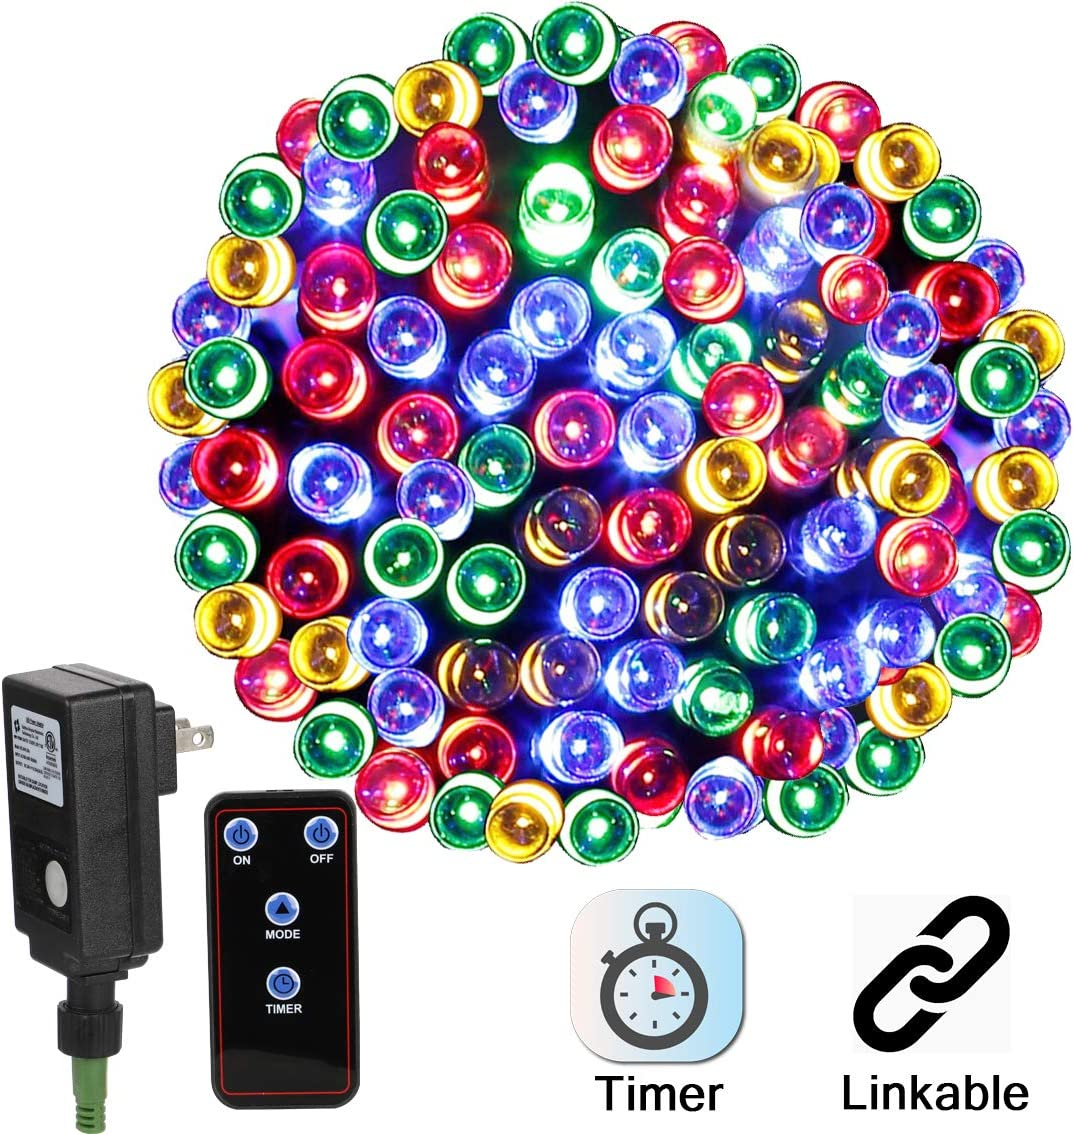 Linkable LED Christmas Lights 72ft 200Leds Multi-Color, Plug-in DC24V Safe Adapter Decorative Lights with Timer Remote, 8-Modes Fairy Lights for Halloween Wedding Party Xmas Decor